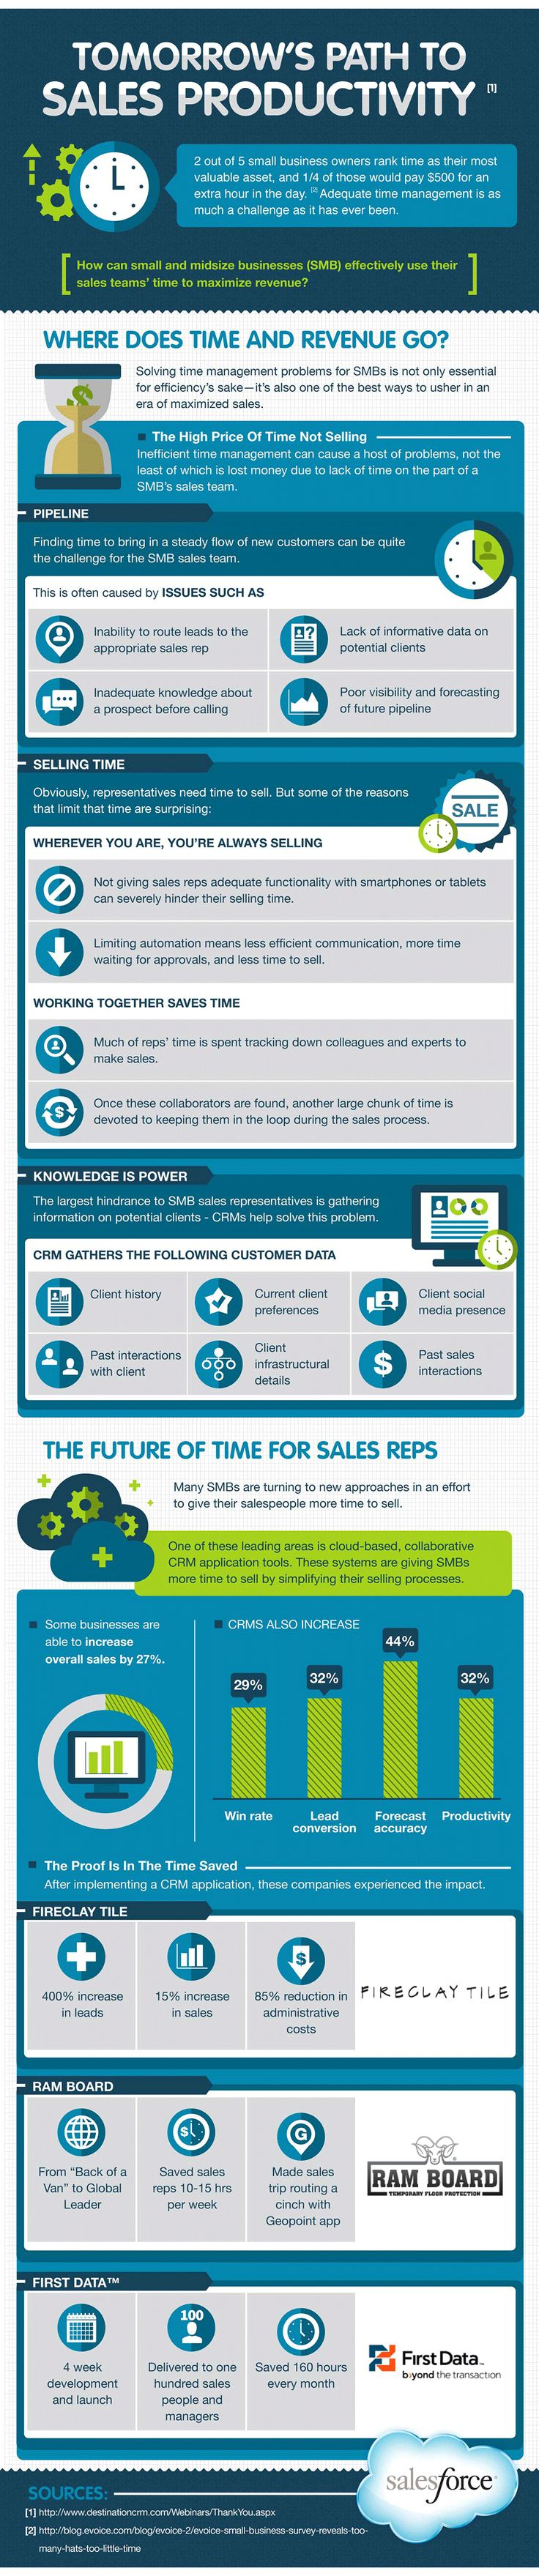 How to Increase Sales Productivity with Small Business CRM - Salesforce.com  http://www.salesforce.com/smallbusinesscenter/resources/how-to-increase-sales-productivity.jsp